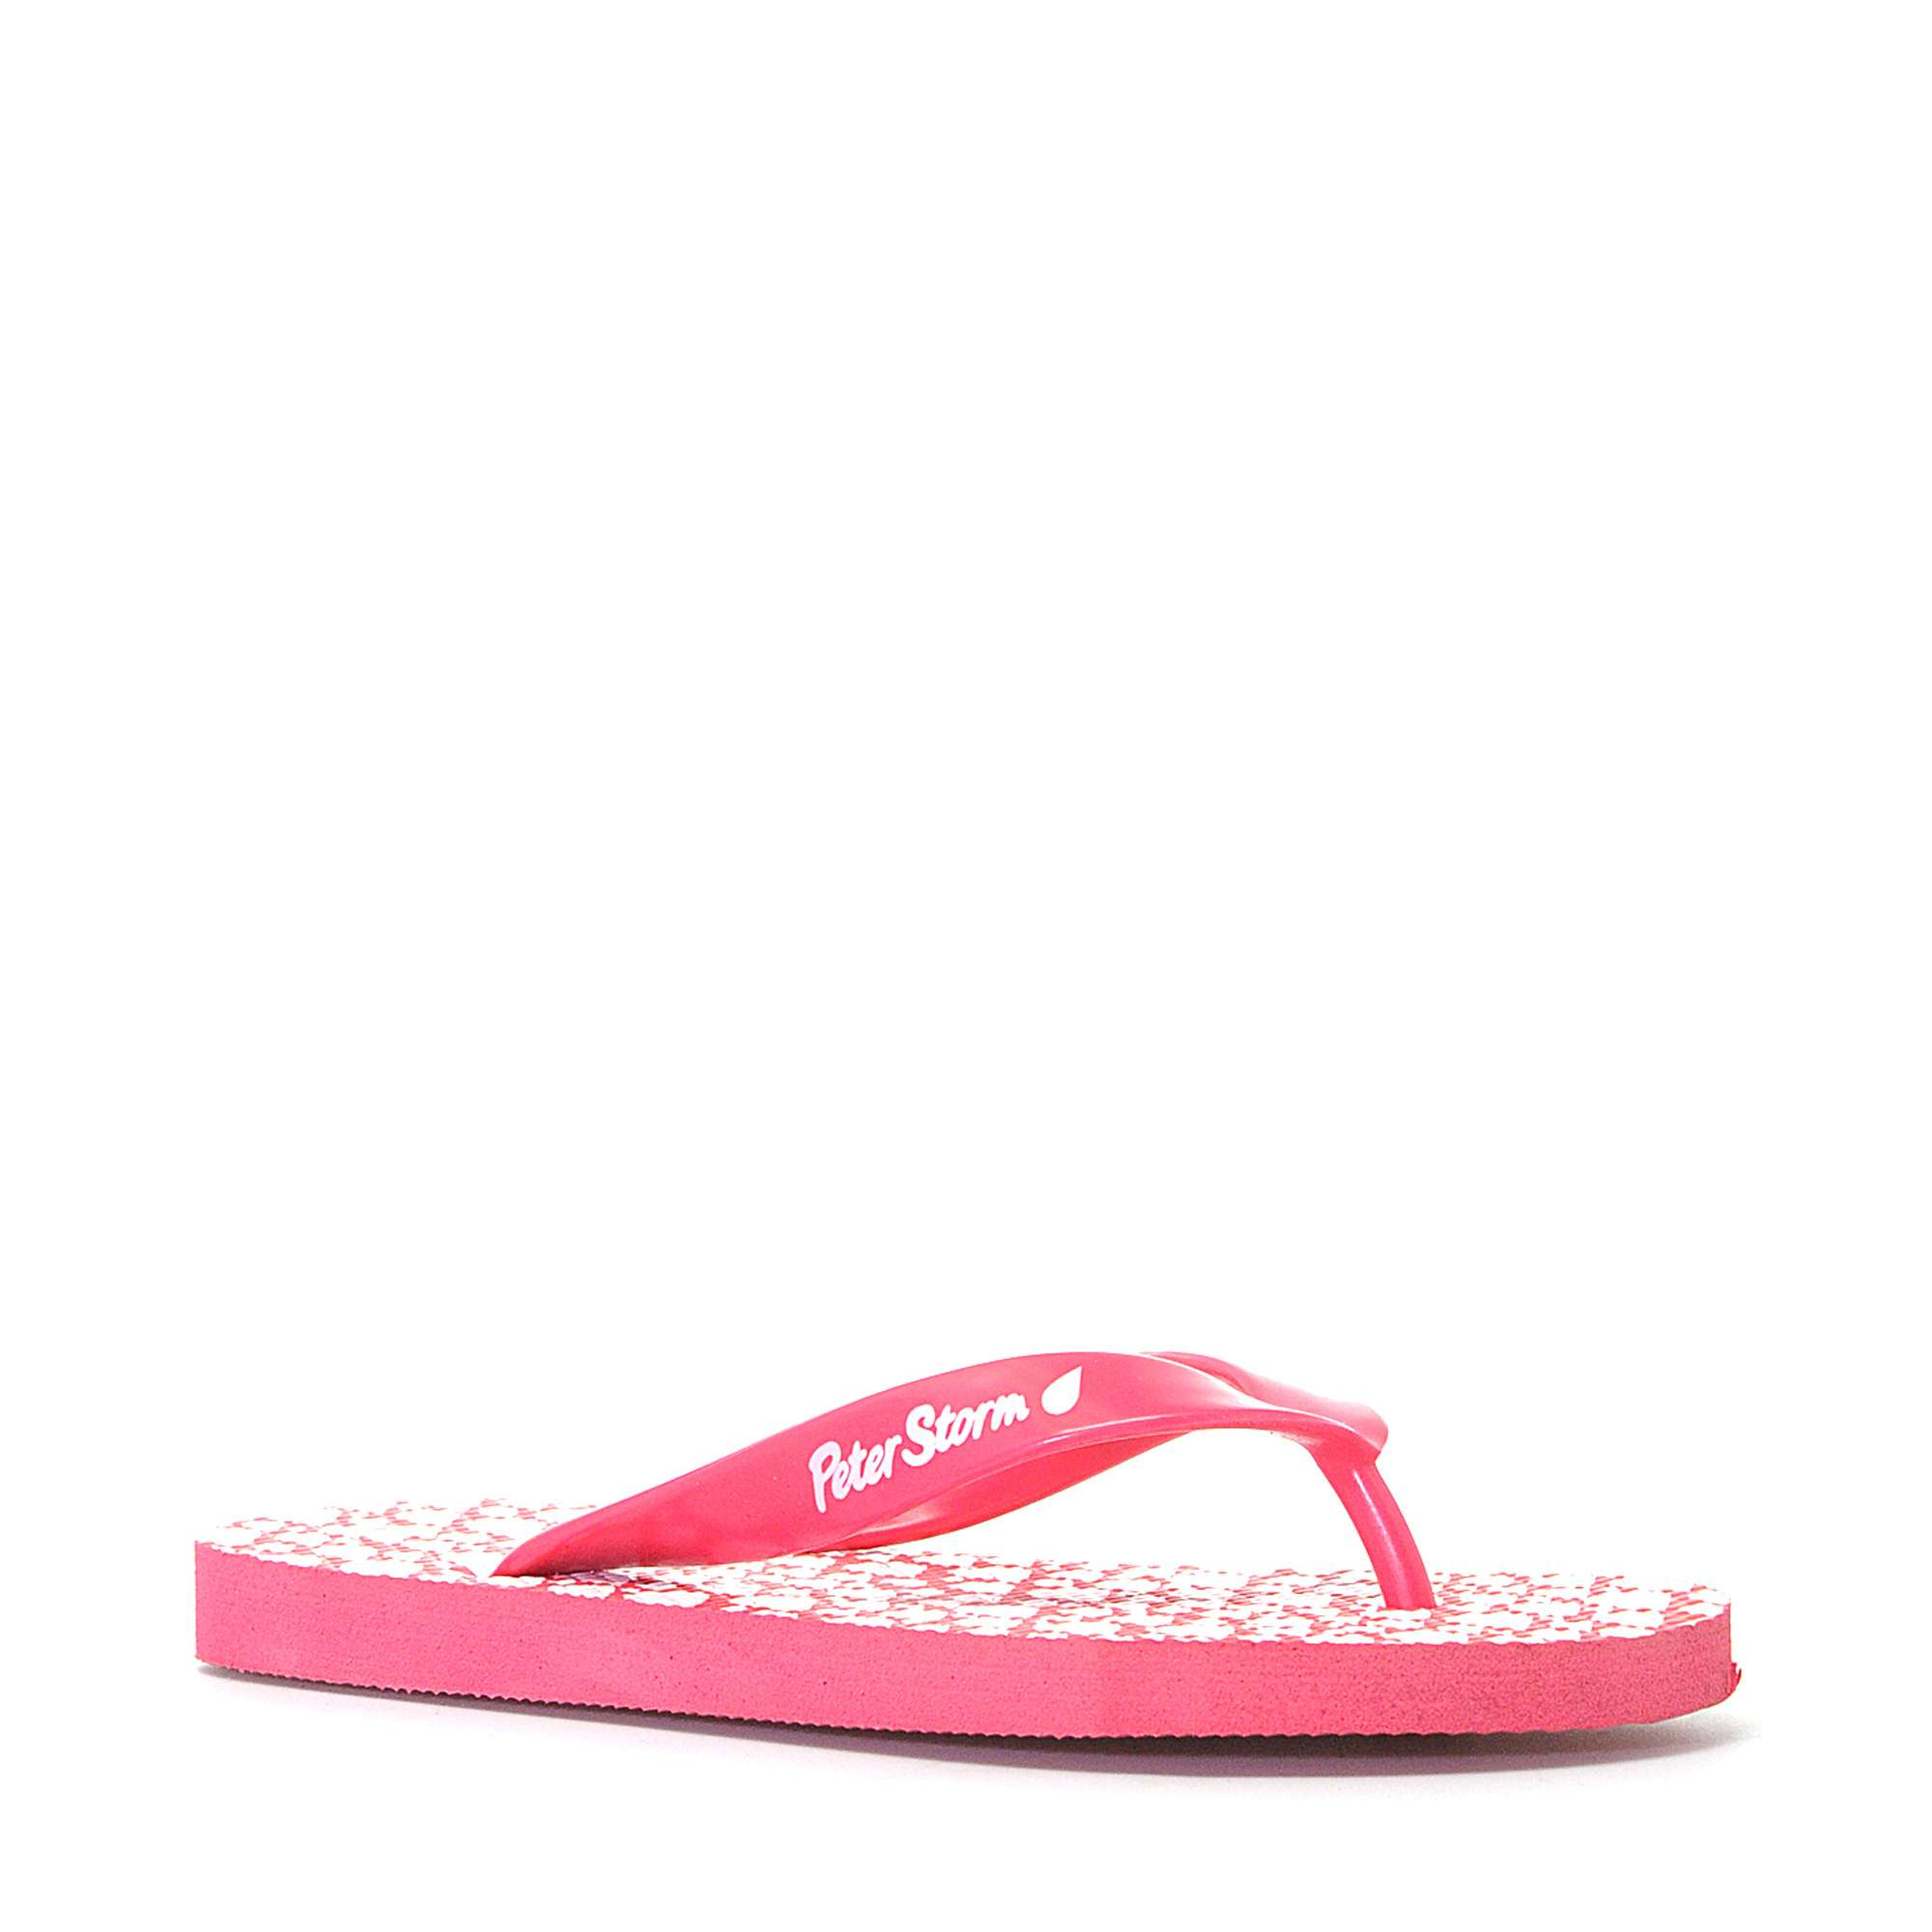 PETER STORM Girls' Rain Flip Flops